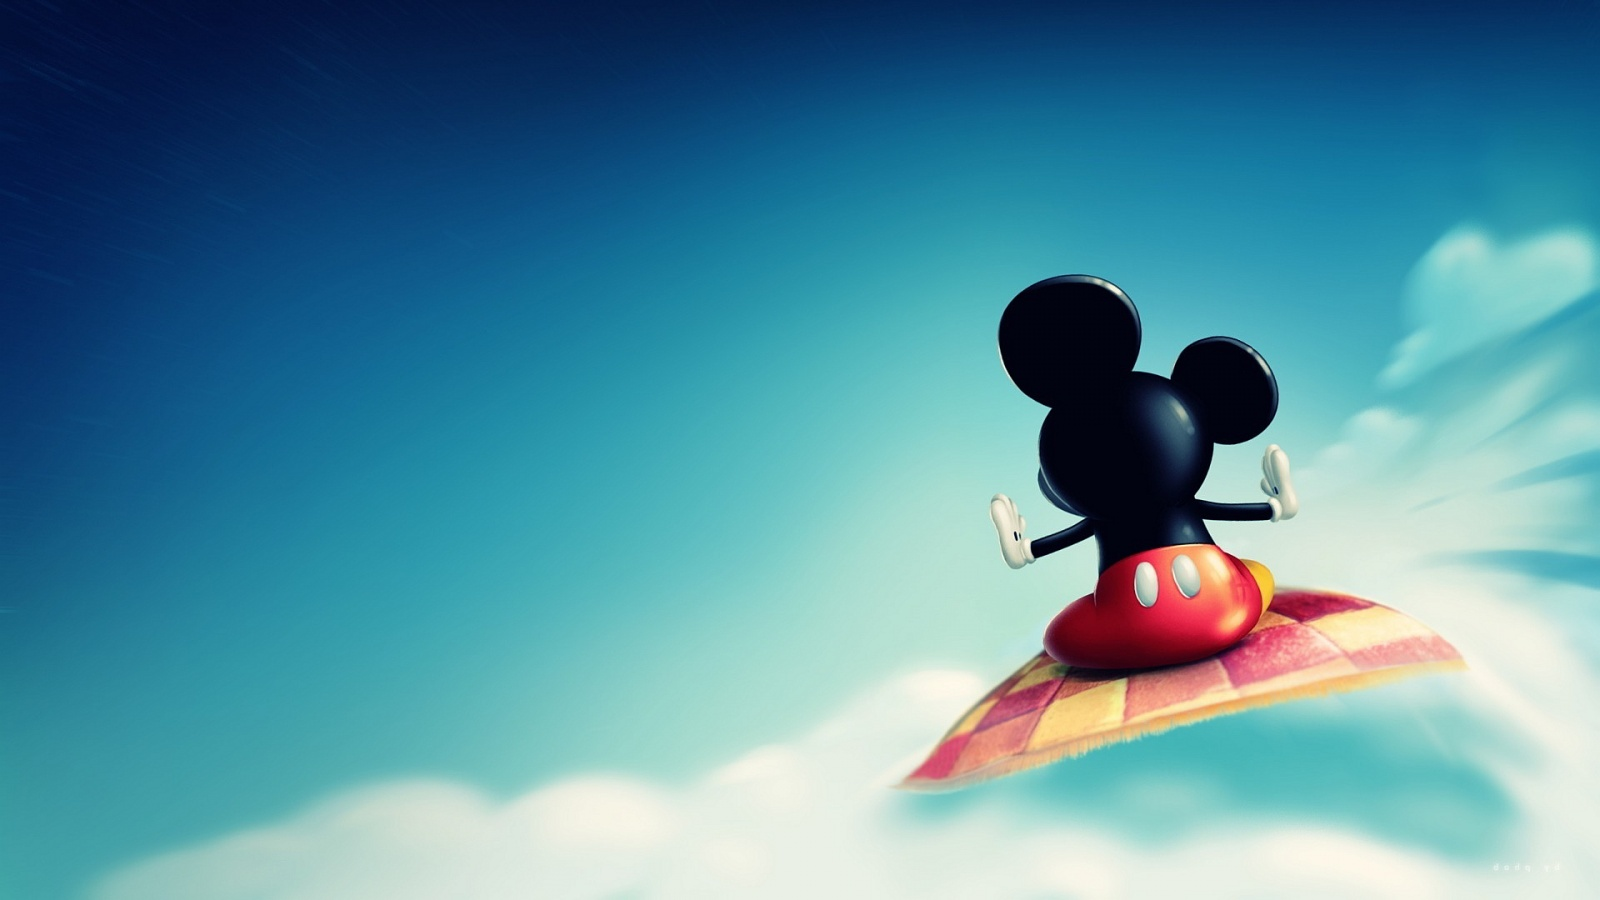 mickey mouse  Mickey Mouse Photo 33467541  Fanpop